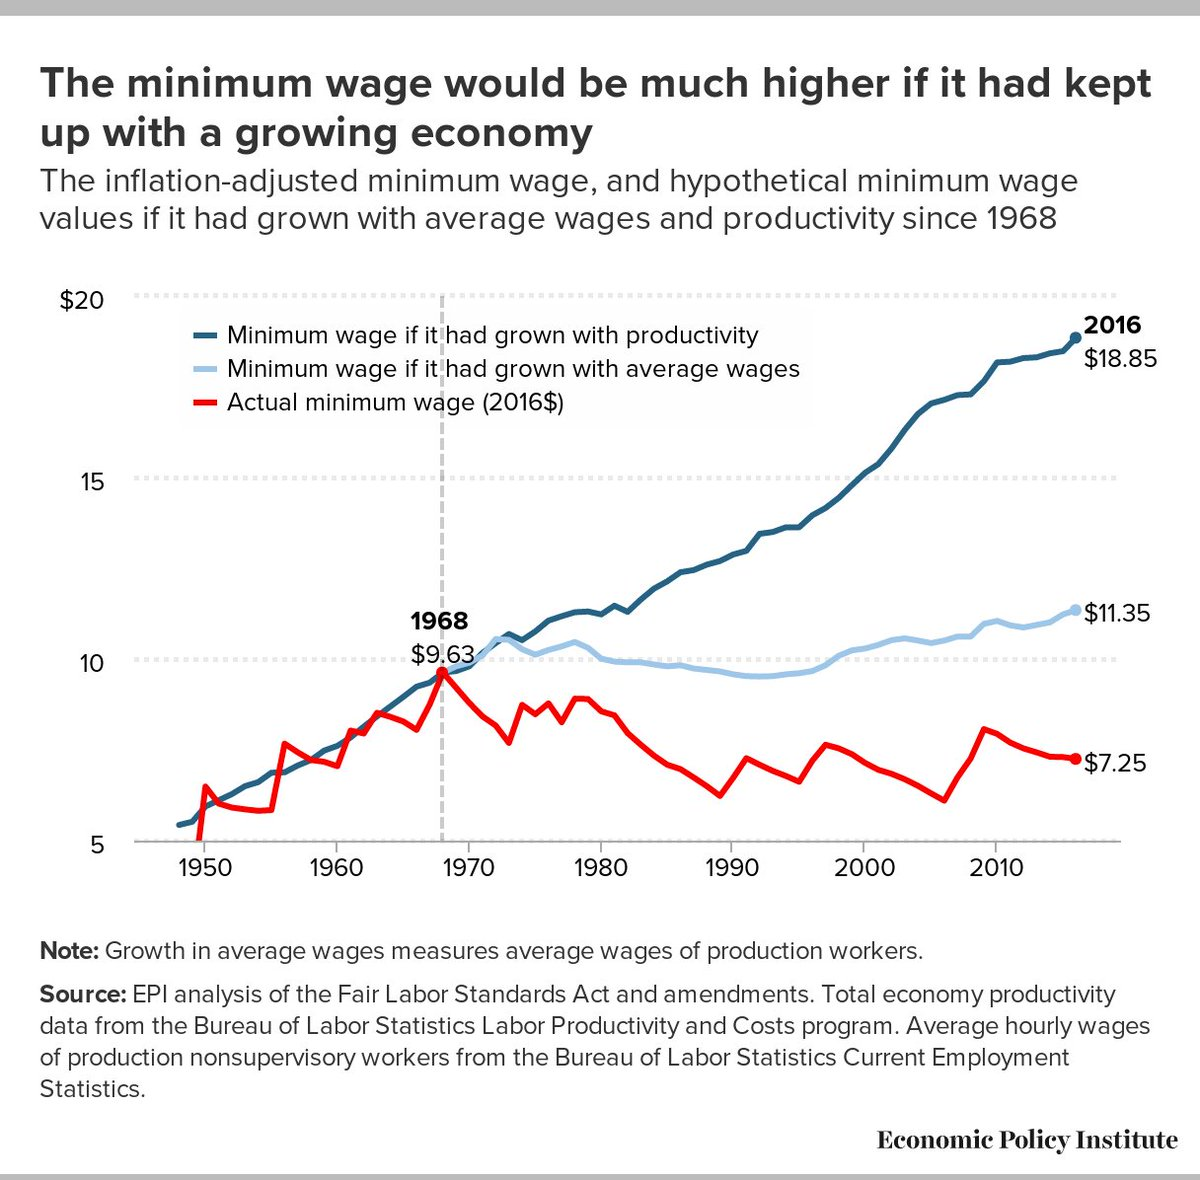 If the minimum wage had kept up with economic growth, it would be $18.85 today. #Fightfor15 https://t.co/ipkHAcFnGB https://t.co/tUfiLGfUcX